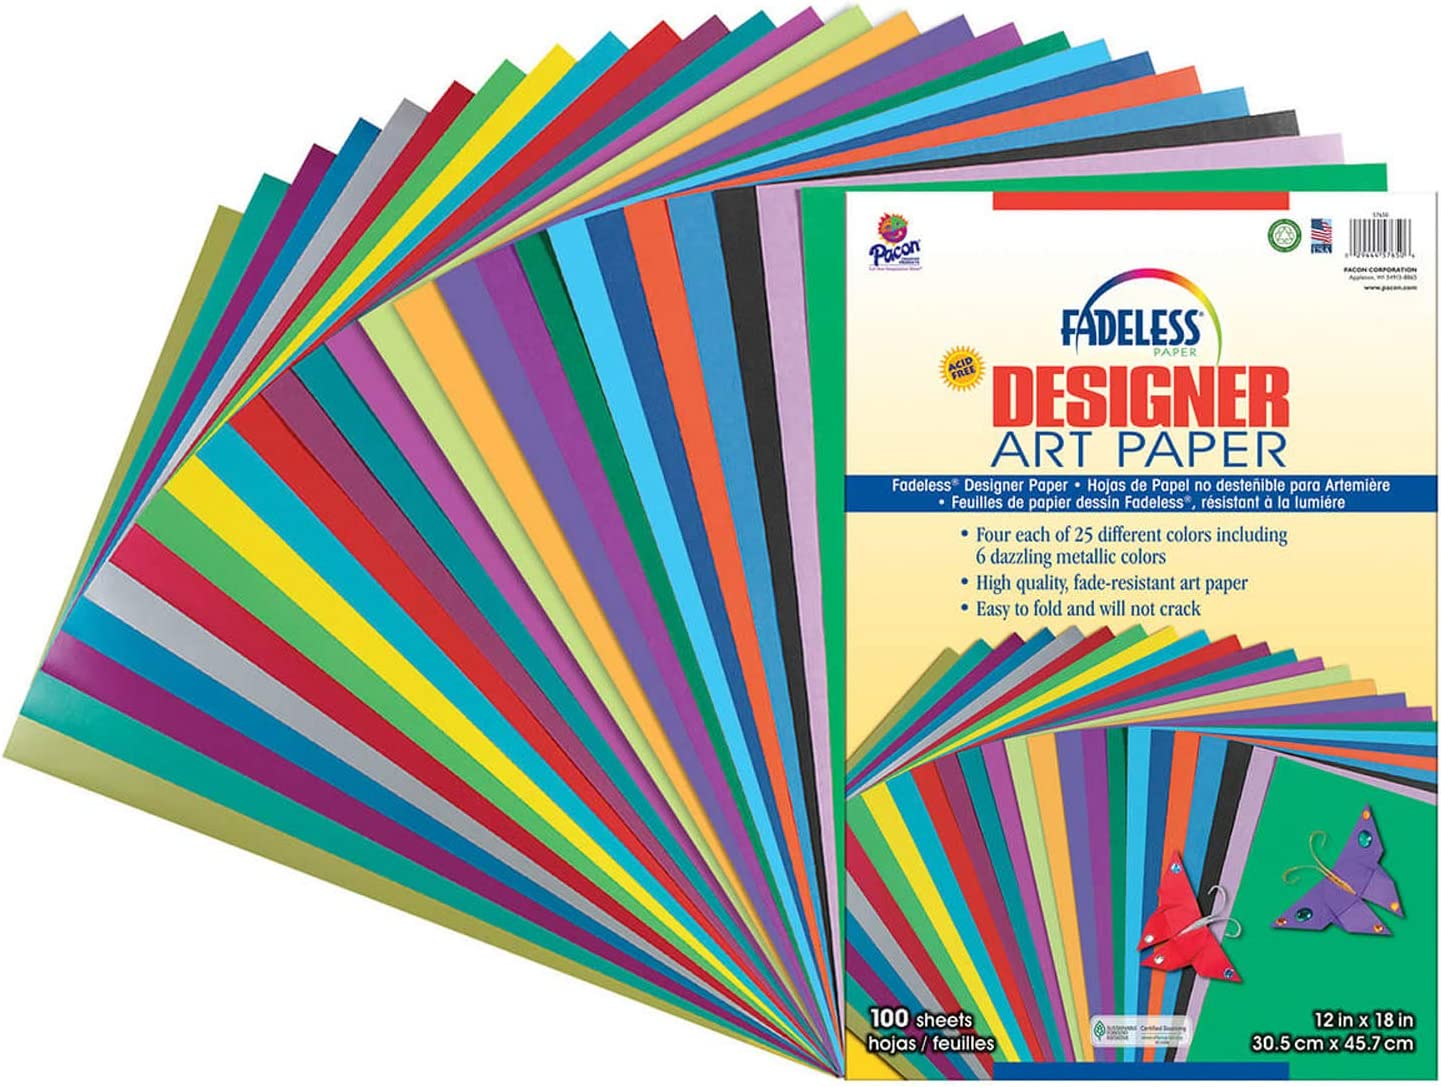 Pacon Fadeless Acid-Free Designer Art Paper, 12 X 18 in, Assorted Color, Pack of 100 : Decorative Paper : Office Products